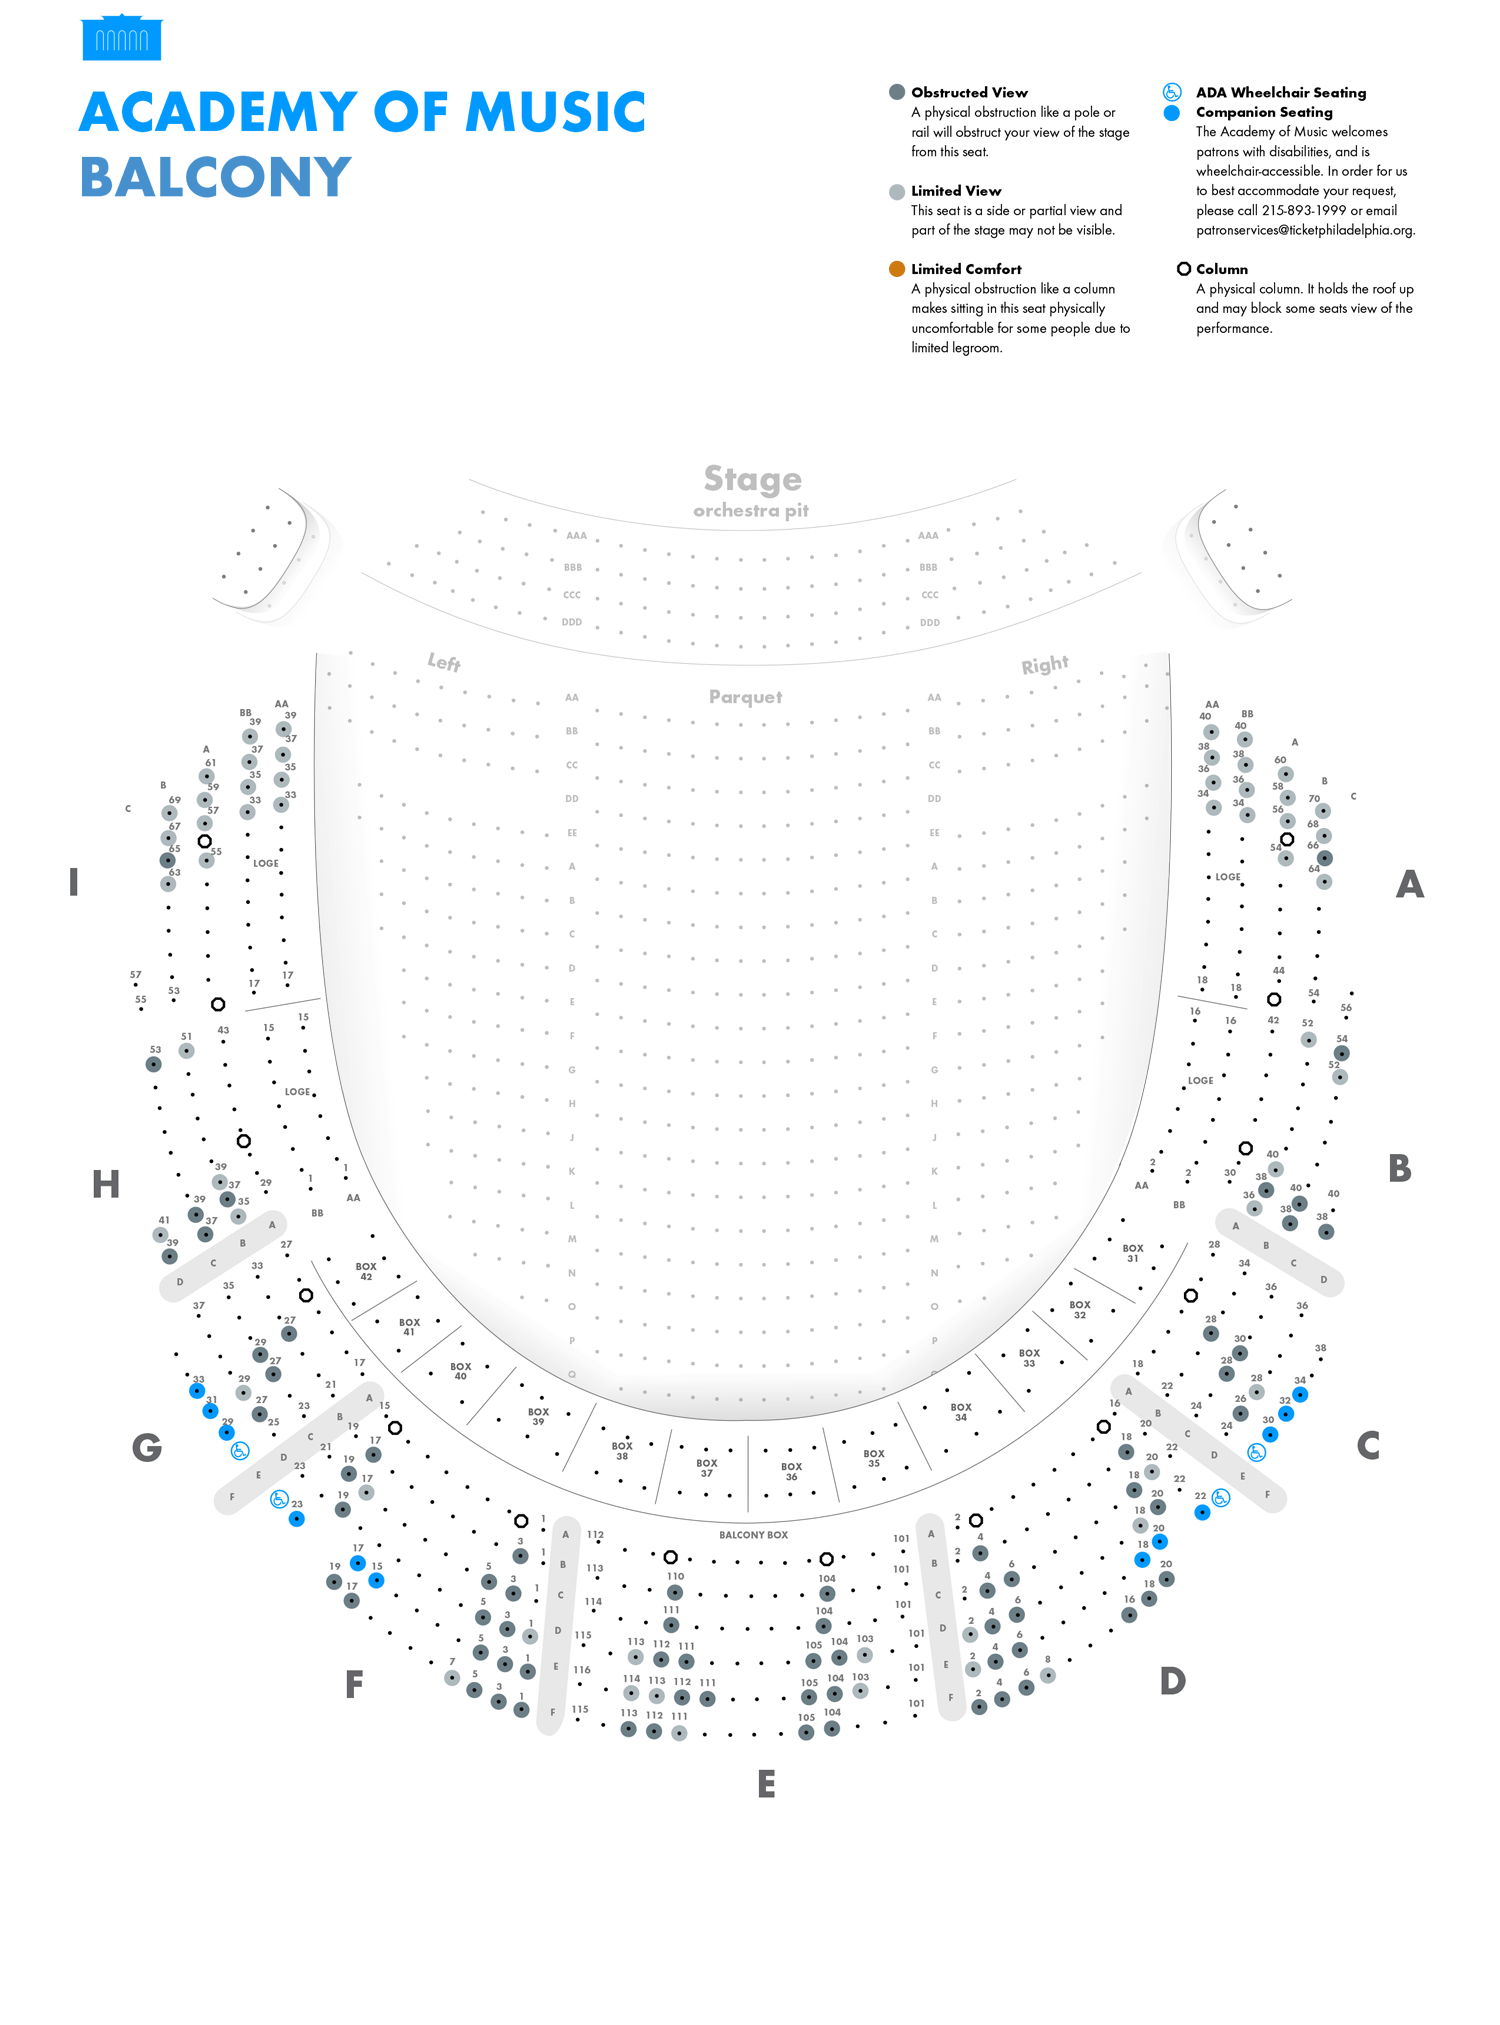 Academy of Music Broadway Balcony  Seating Chart